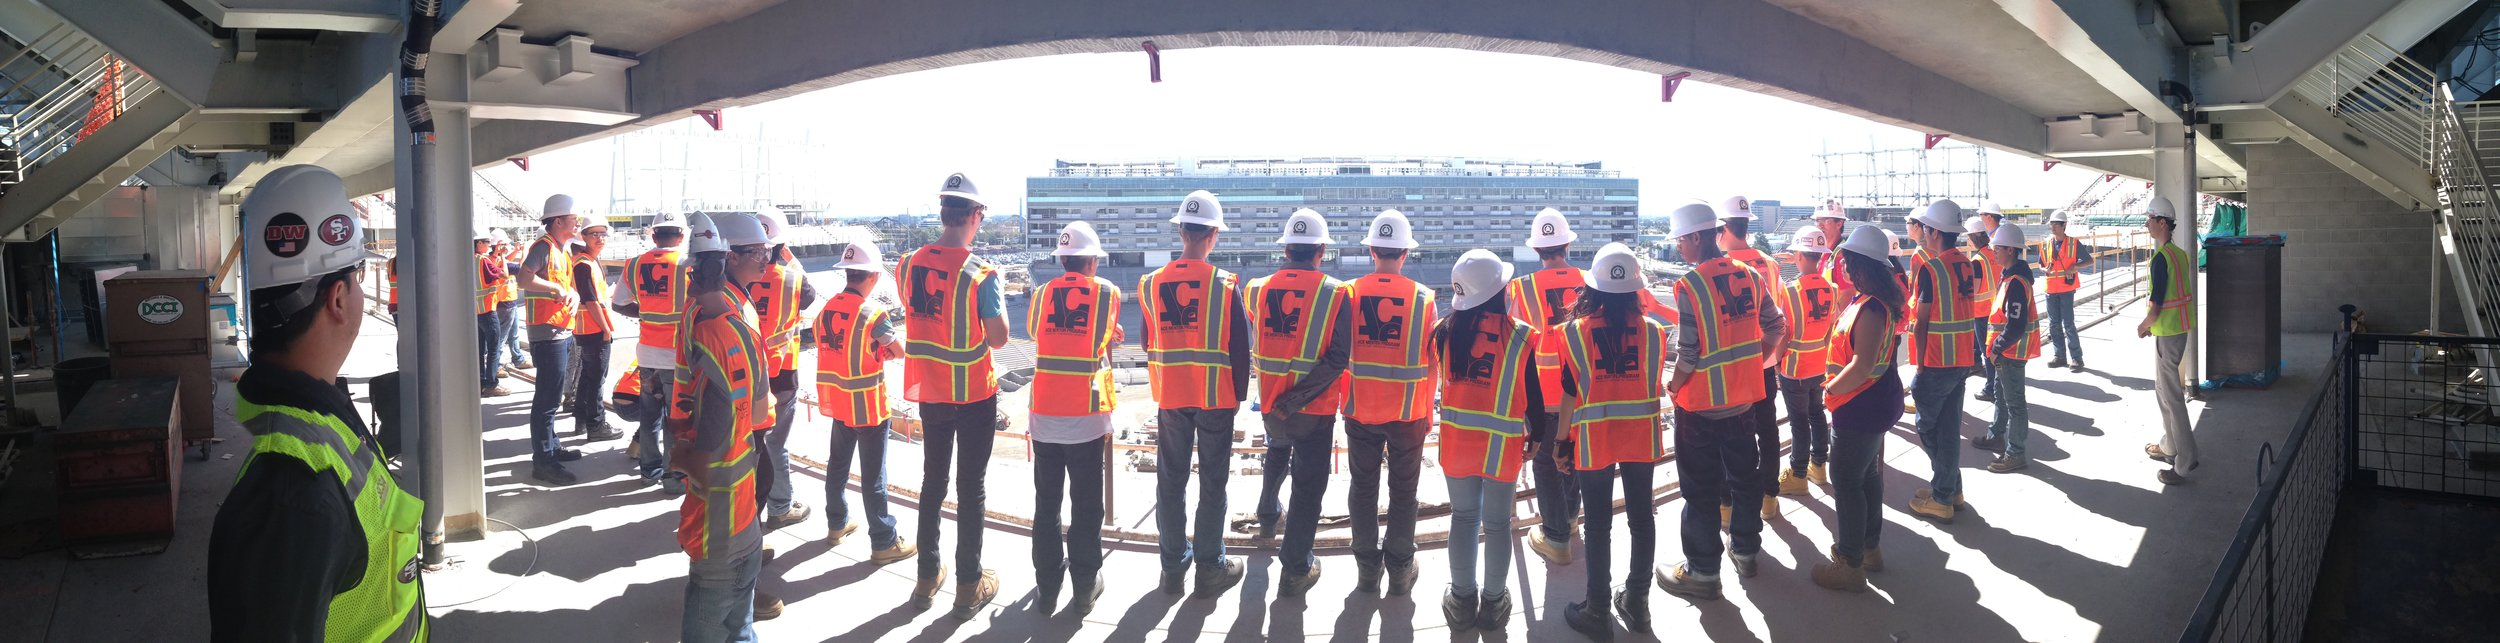 ACE Mentor students on a construction site tour in California. Photo courtesy of ACE